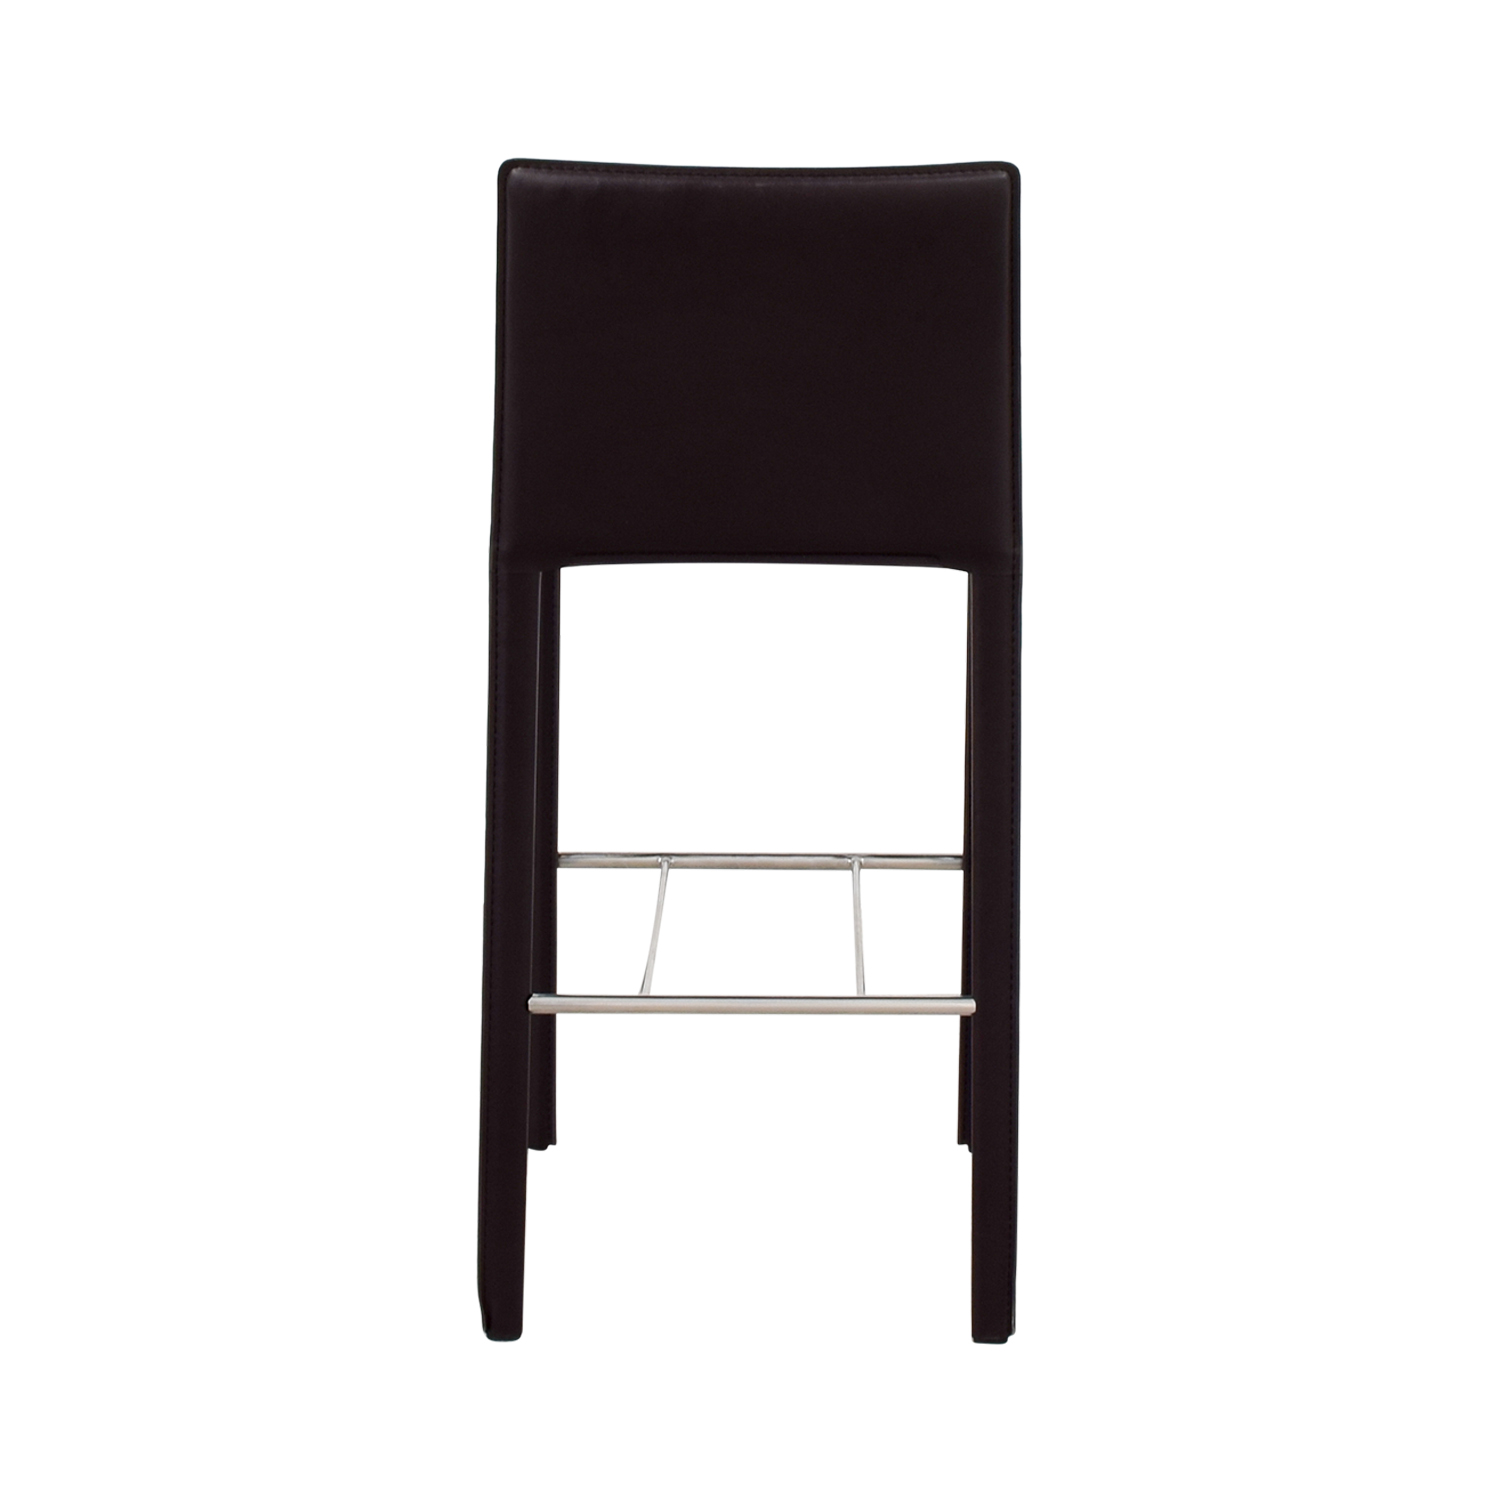 Coaster Coaster Modern Brown Leatherette Bar Chair coupon